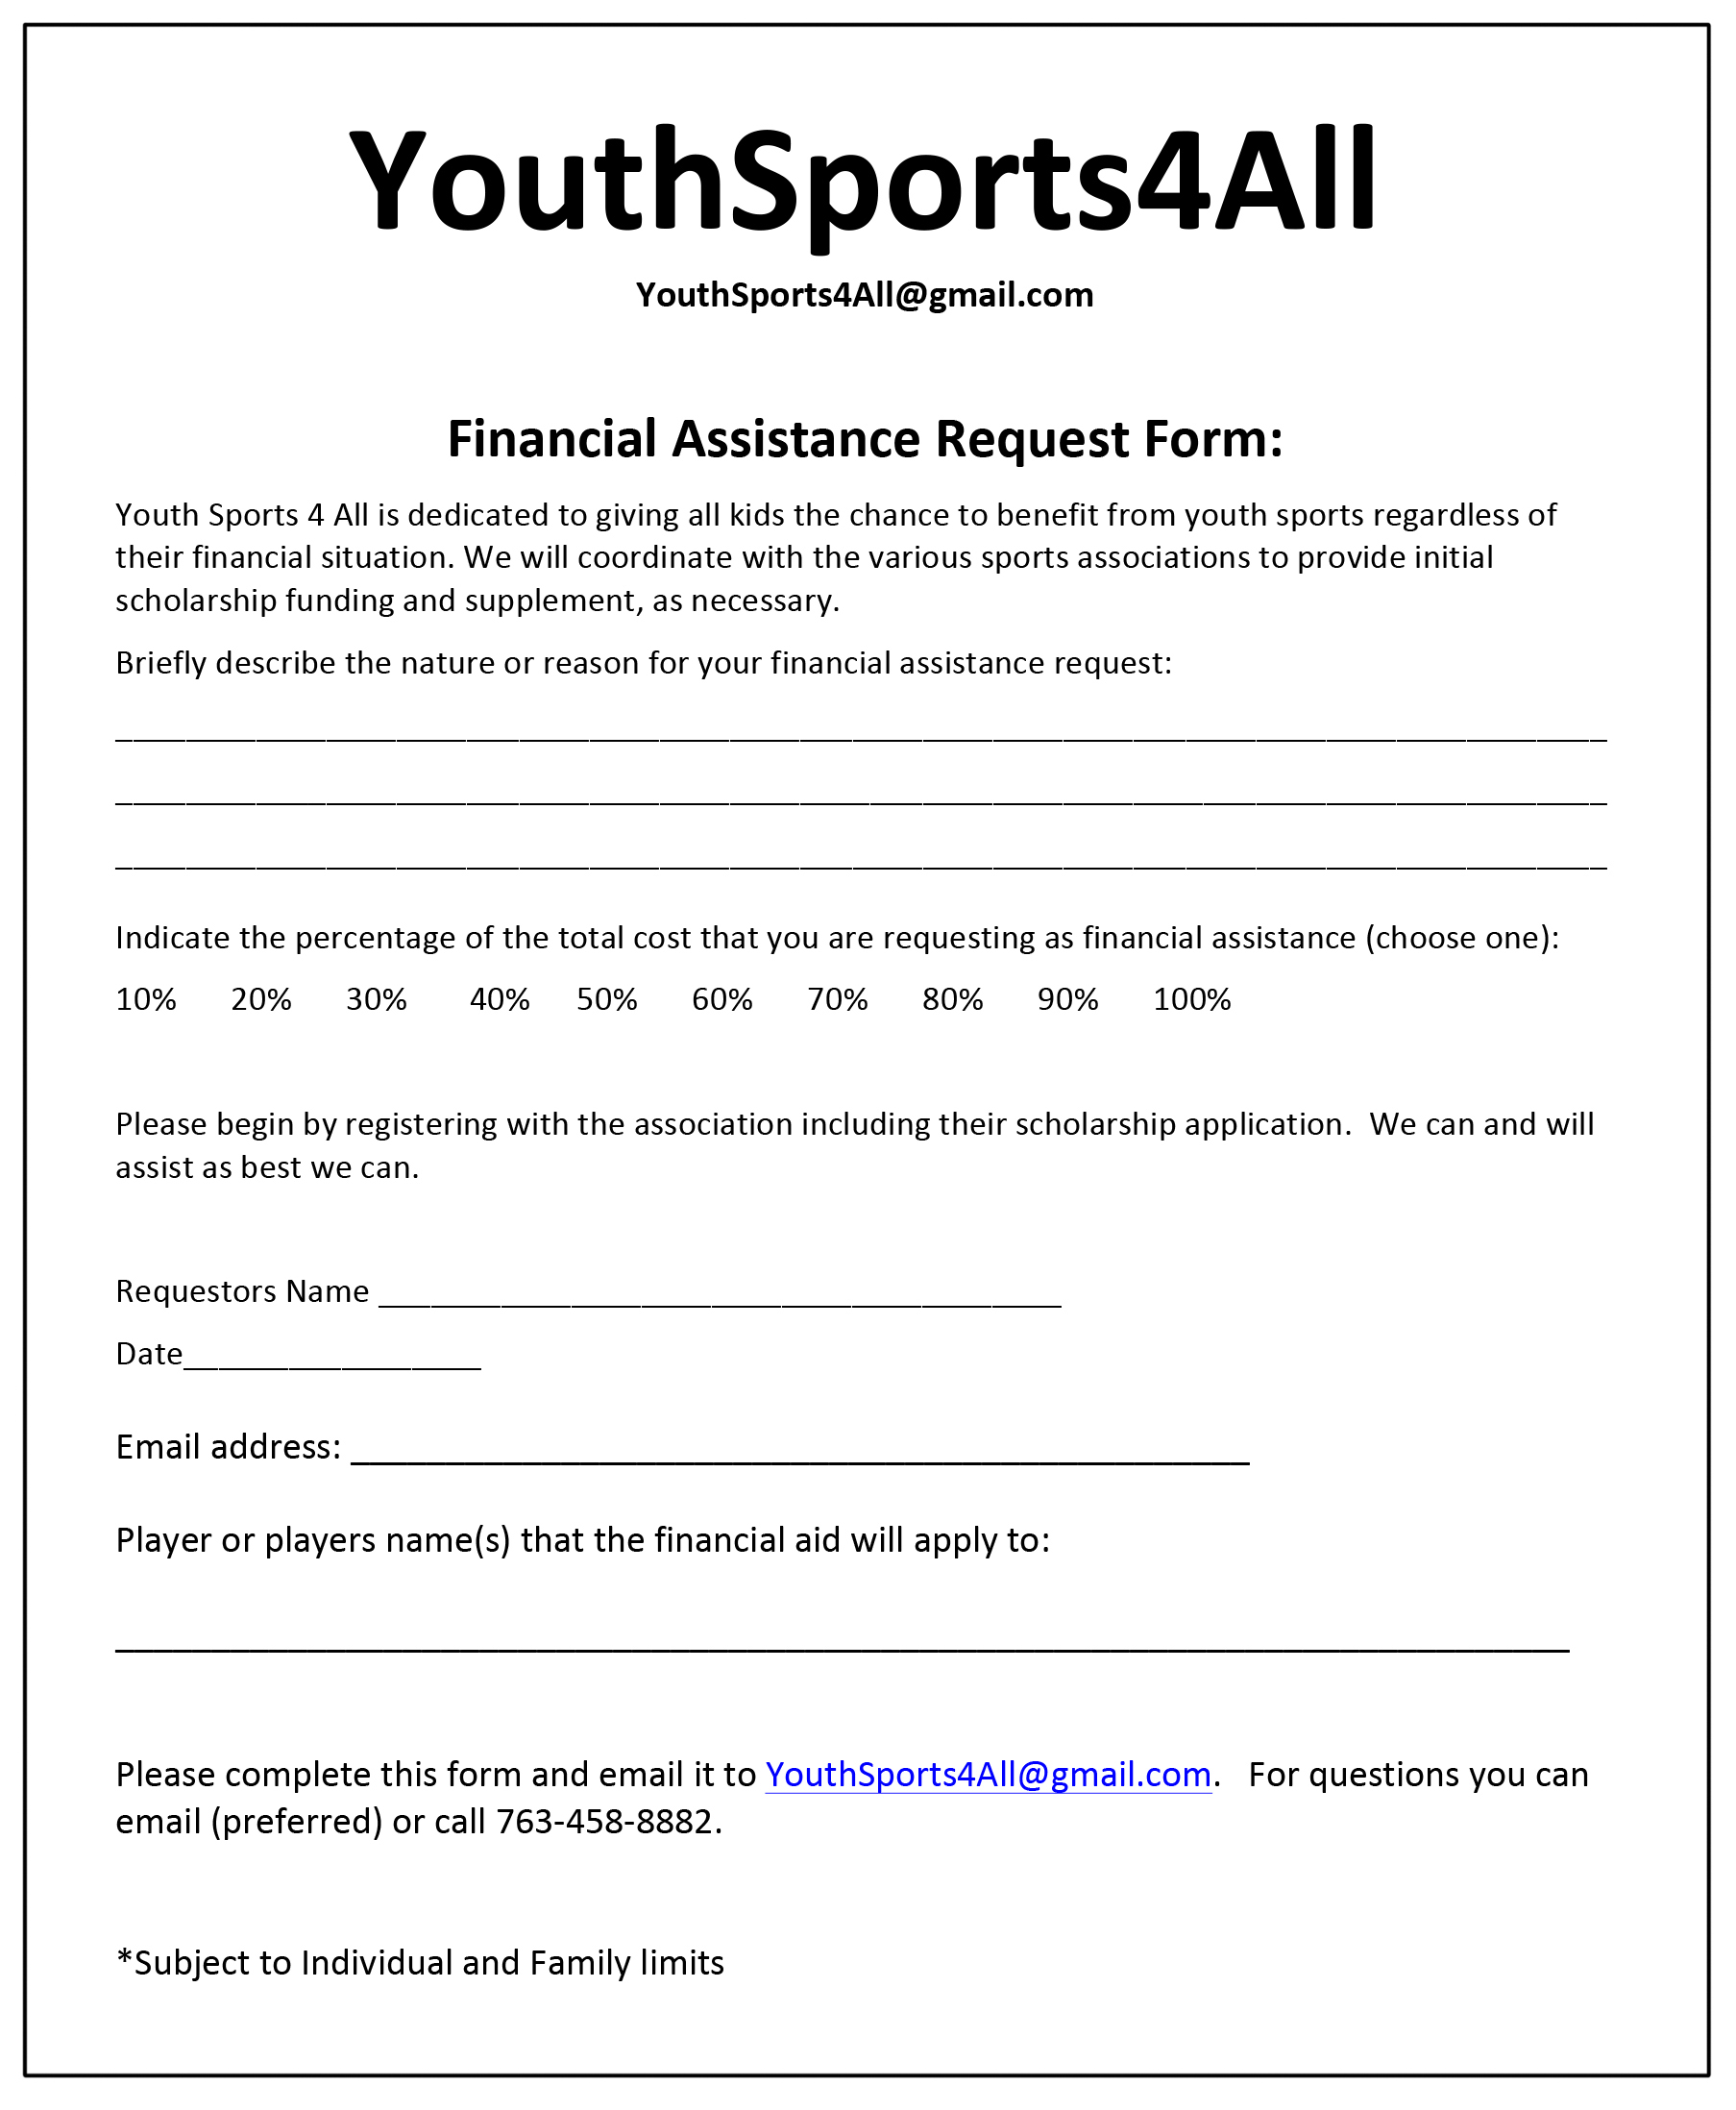 Microsoft Word - YS4A Financial Assistance Form 2019 (1).docx